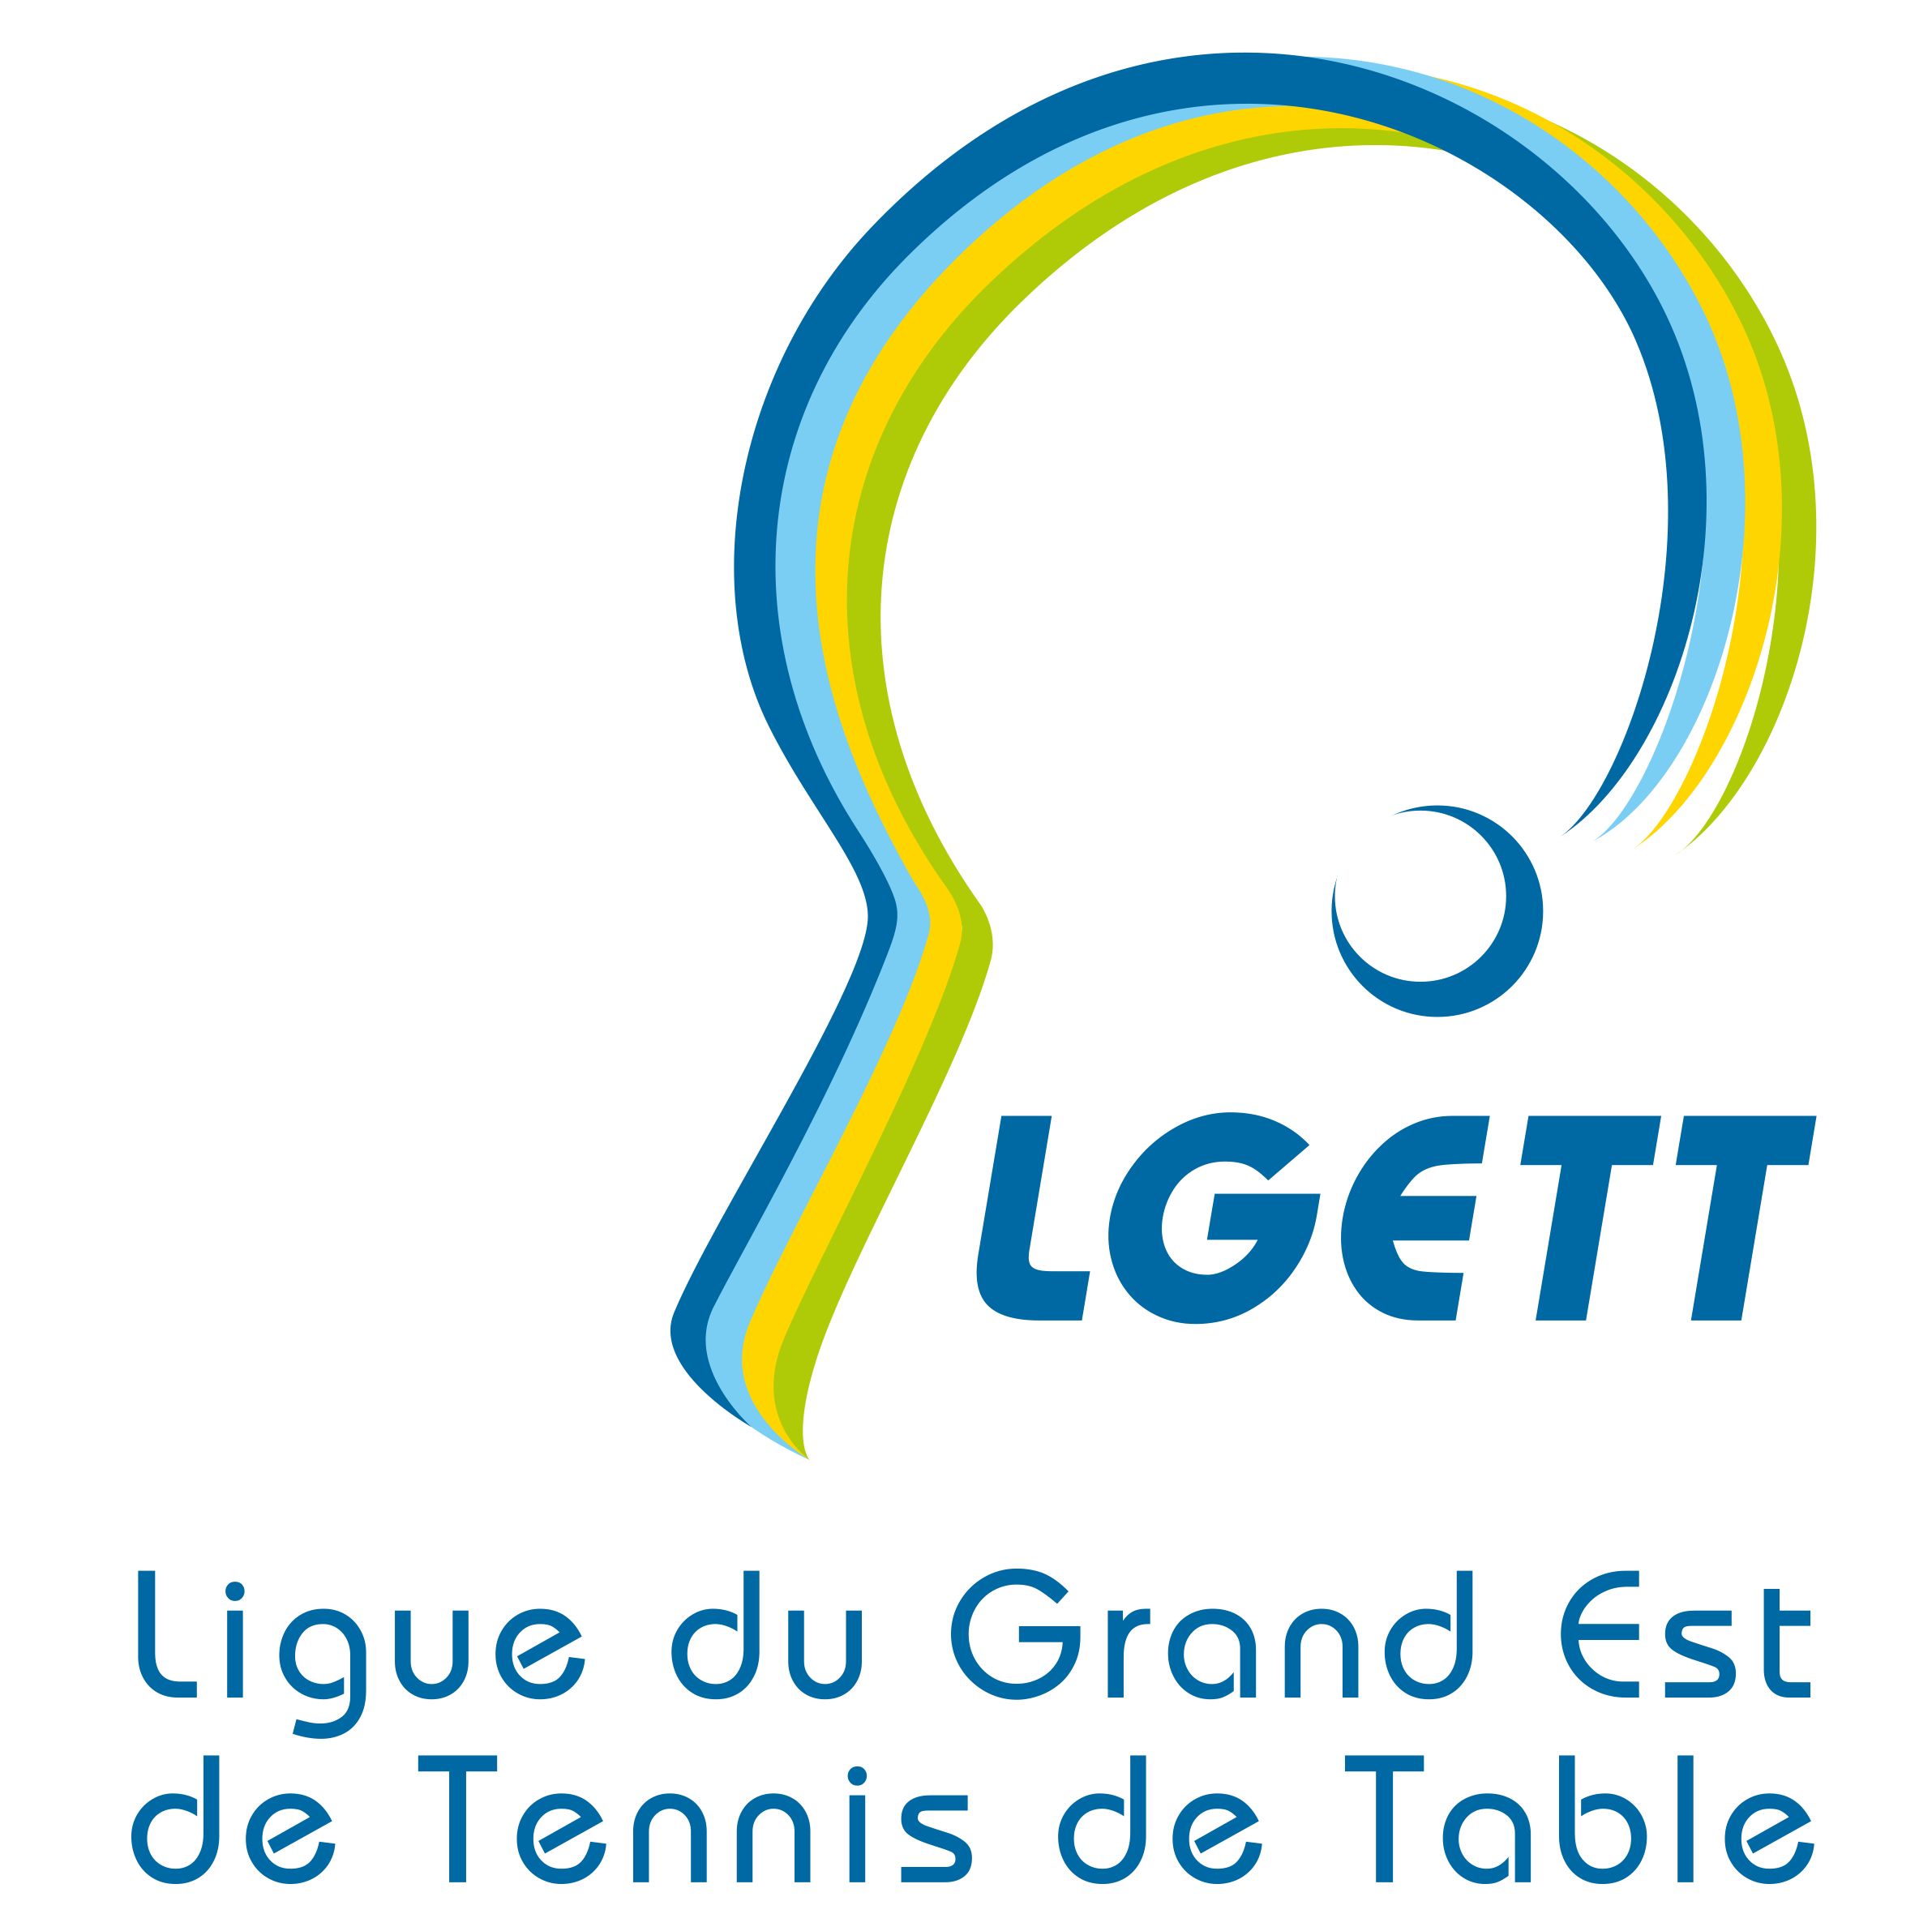 Eurominichamp 39 s la comp tition europ enne des 11 ans - Ligue de tennis de table poitou charentes ...